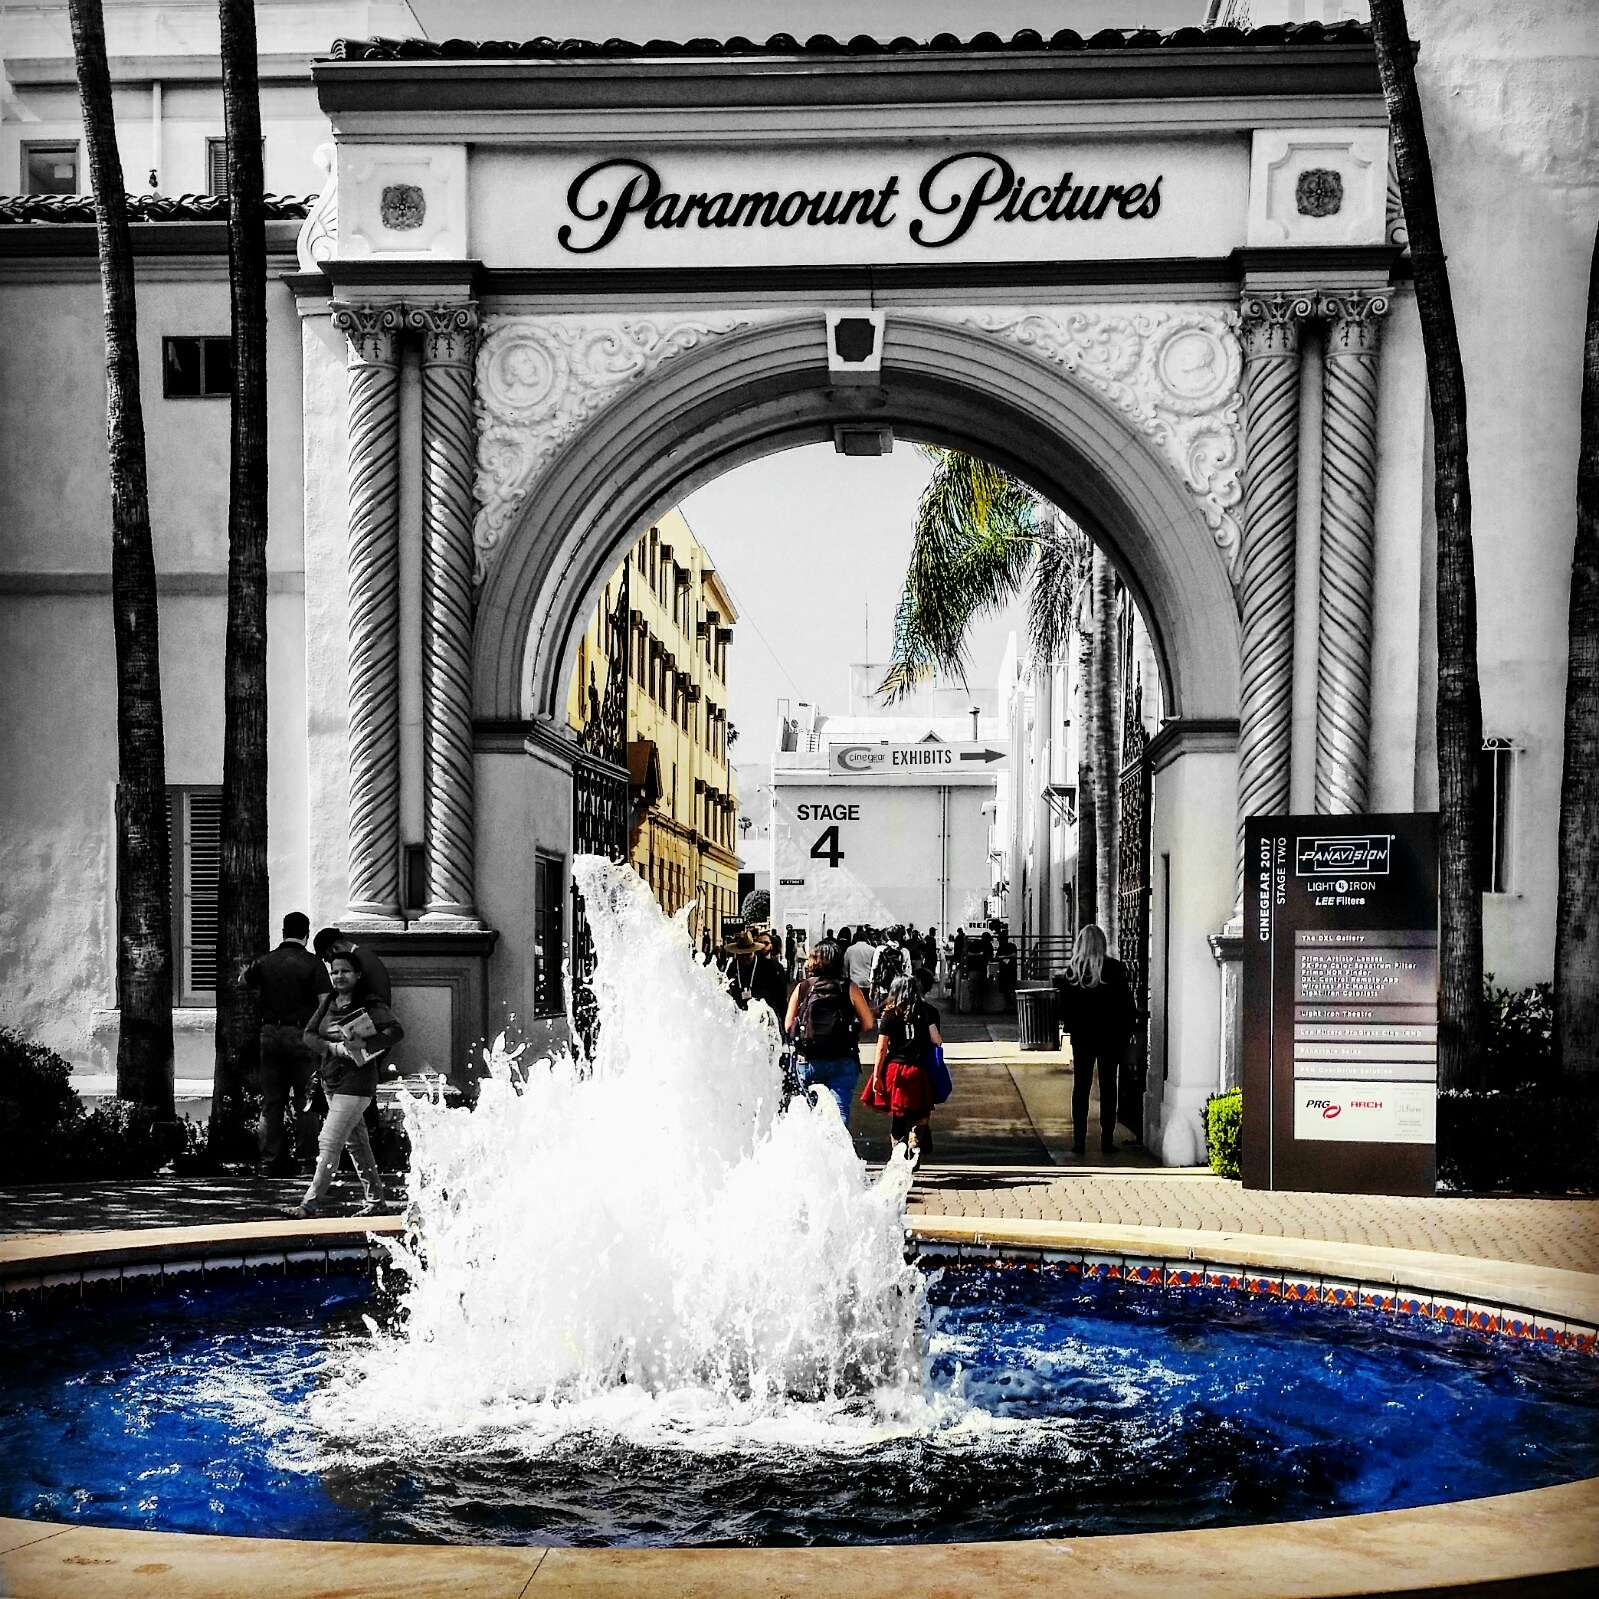 Paramount Pictures Bronson Waterfall Splash - Photo by Socialbilitty